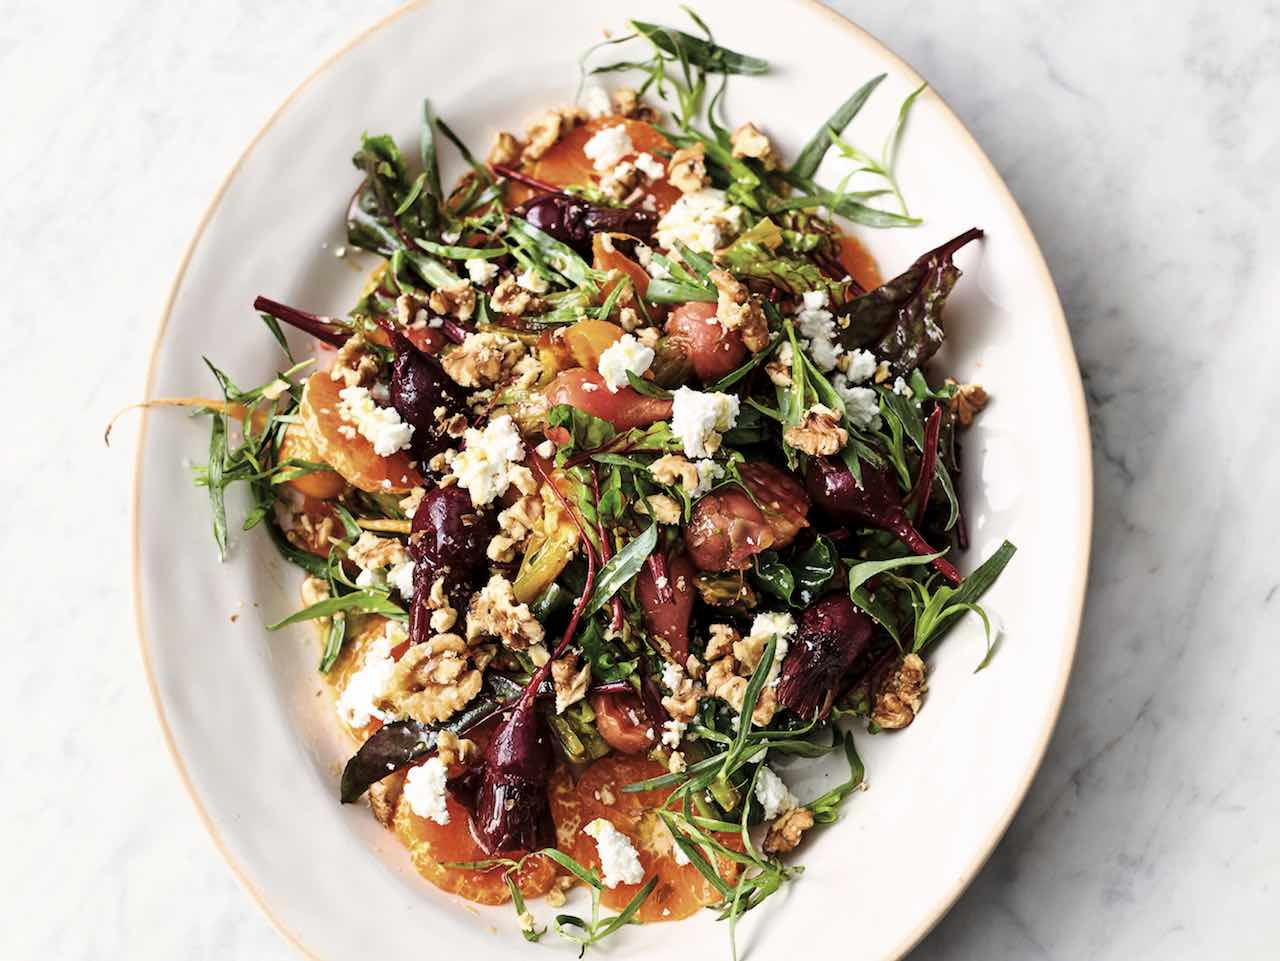 27 Great Recipes From Jamie Oliver, Nigella, And More Chefs We Love